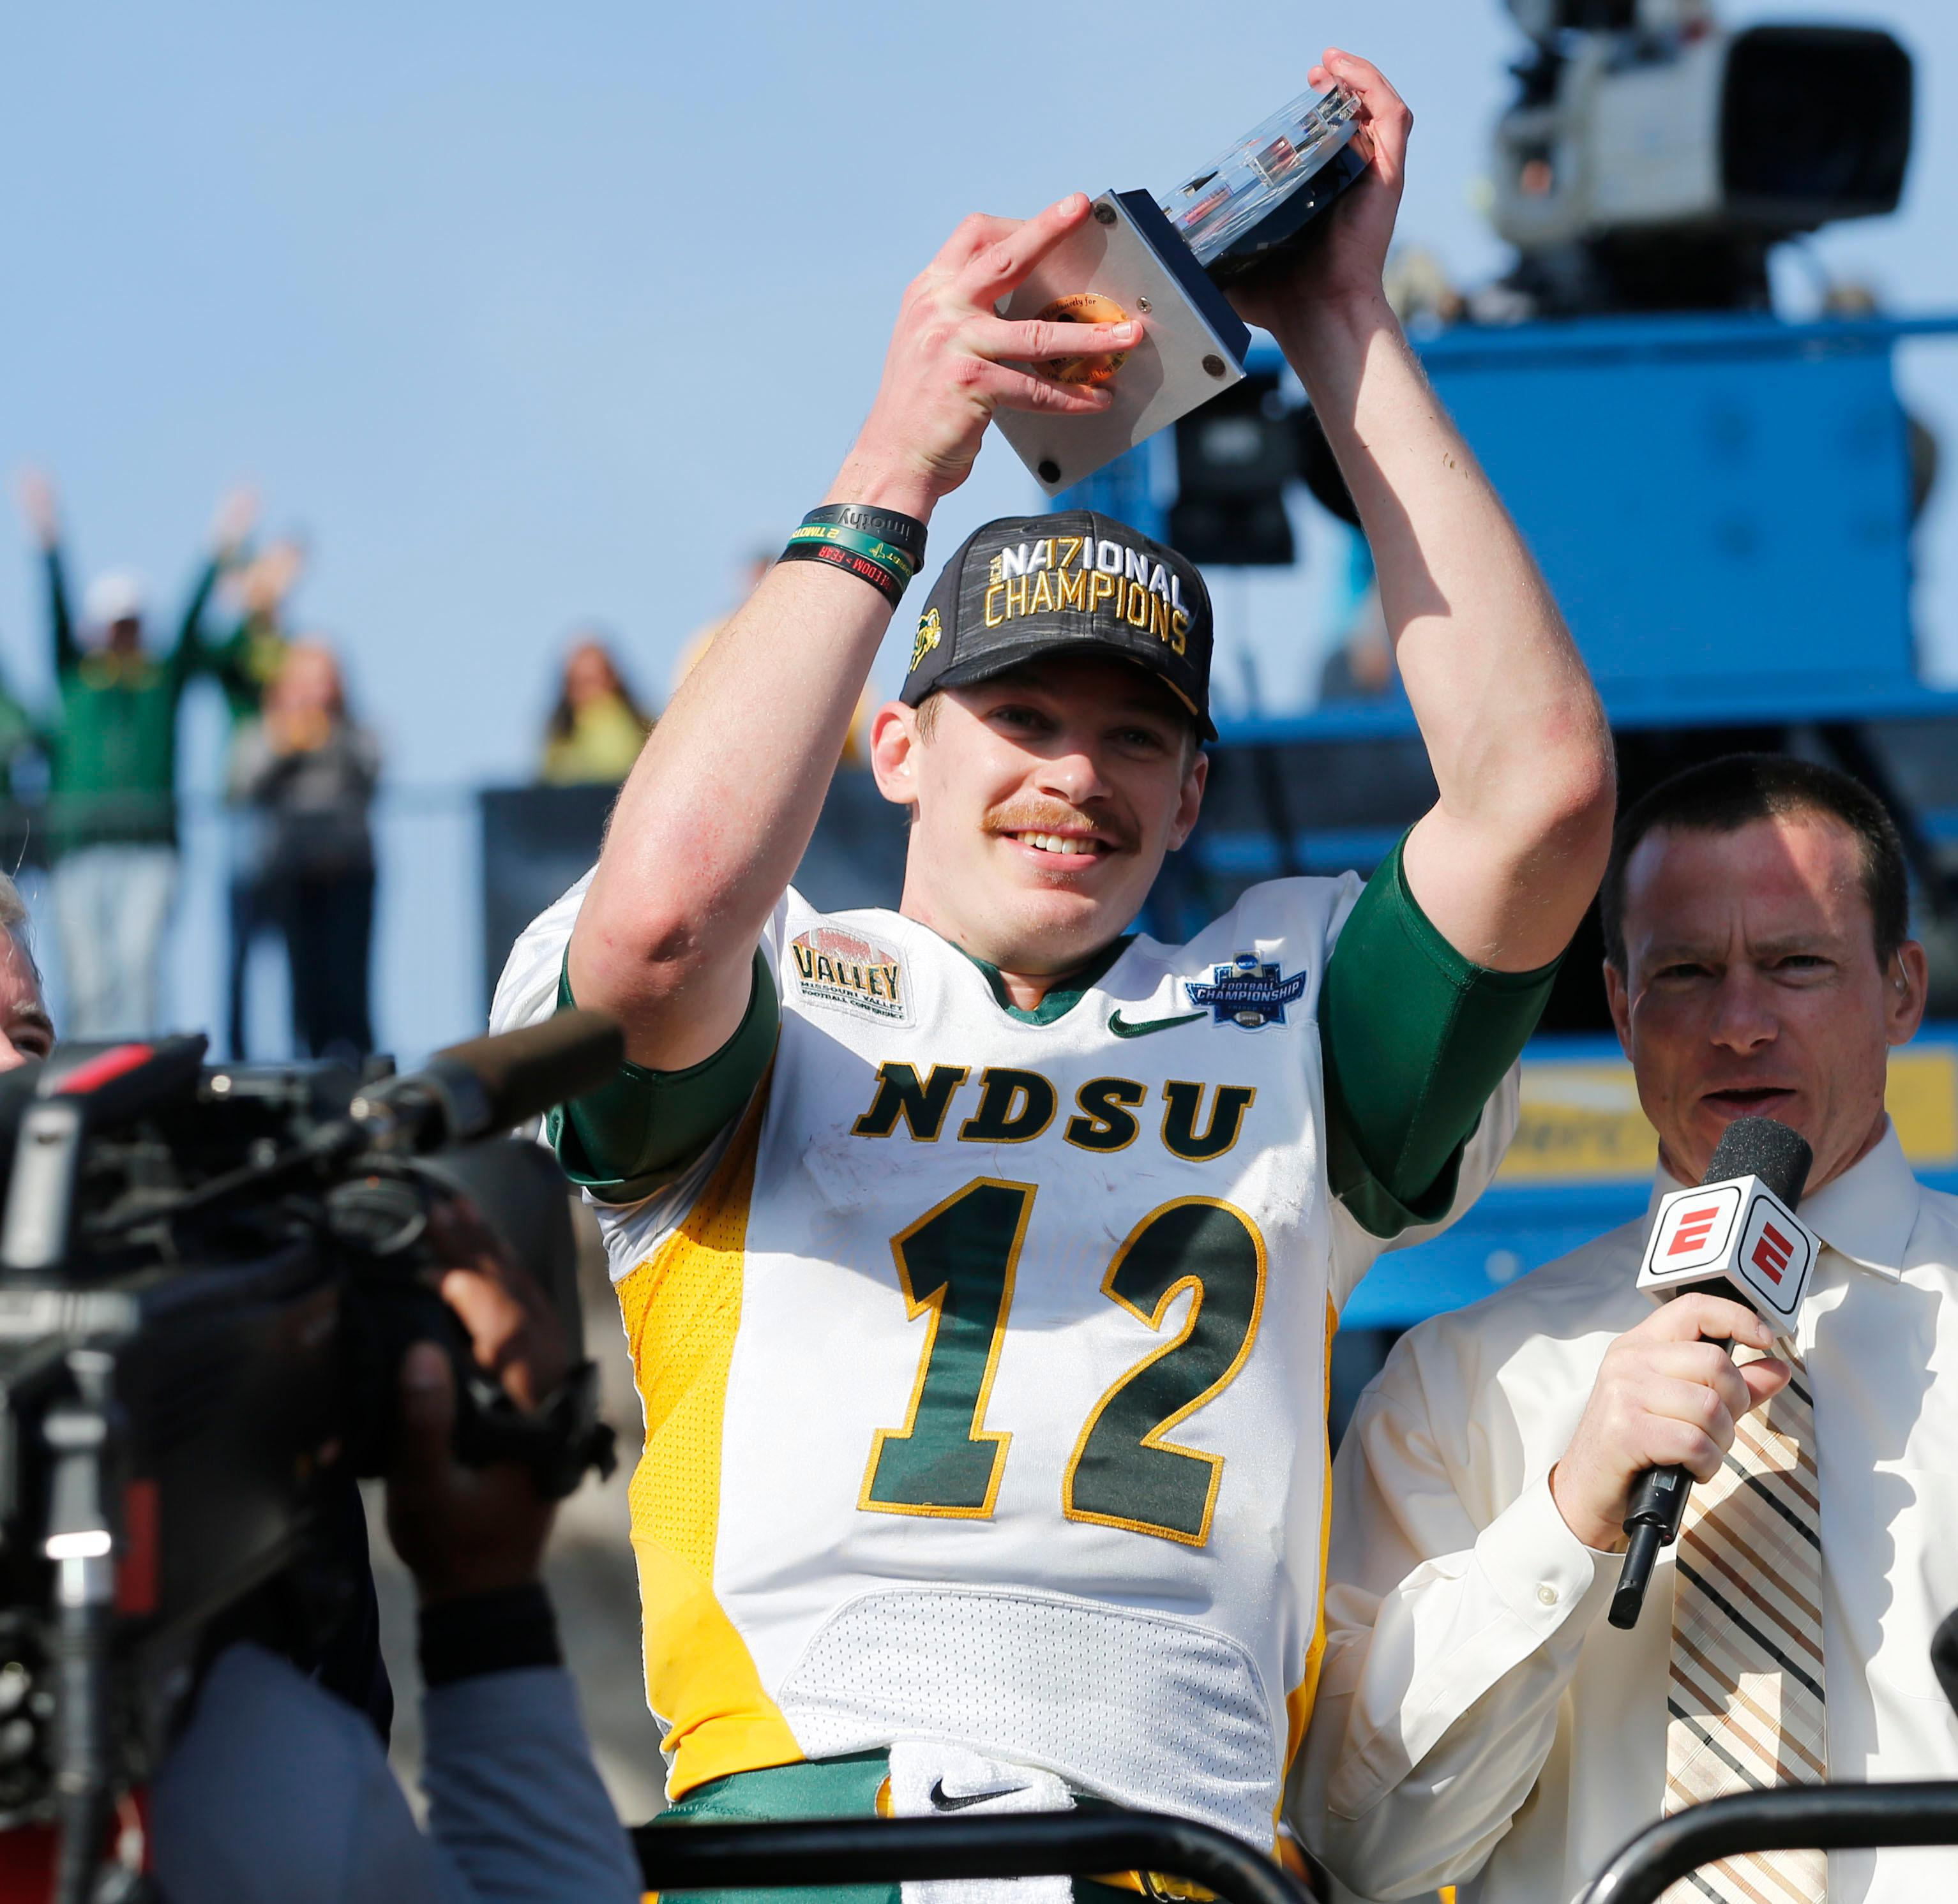 North Dakota State quarterback Easton Stick (12) hoists up the Most Outstanding Player award after the team defeated James Madison 17-13 in the FCS championship NCAA college football game at Toyota Stadium in Frisco, Texas, Saturday, Jan. 6, 2017. (Vernon Bryant/The Dallas Morning News via AP)